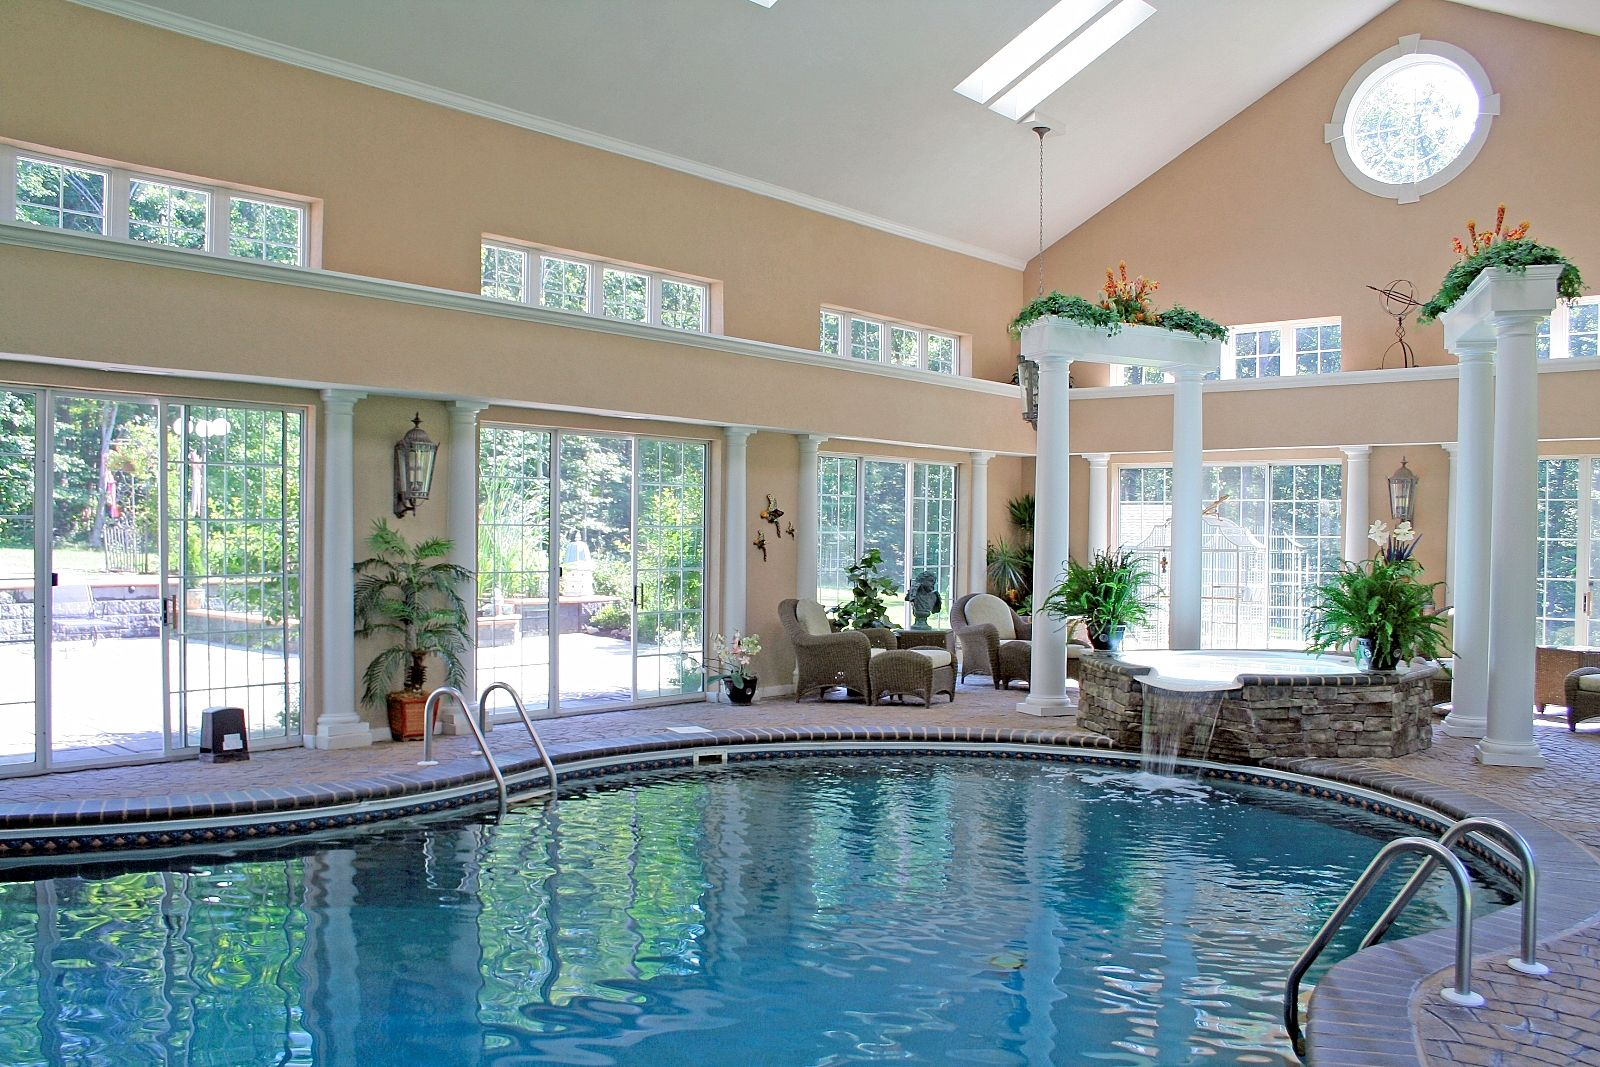 Luxury House Pool the house swimming pool will not make the home become perfect if